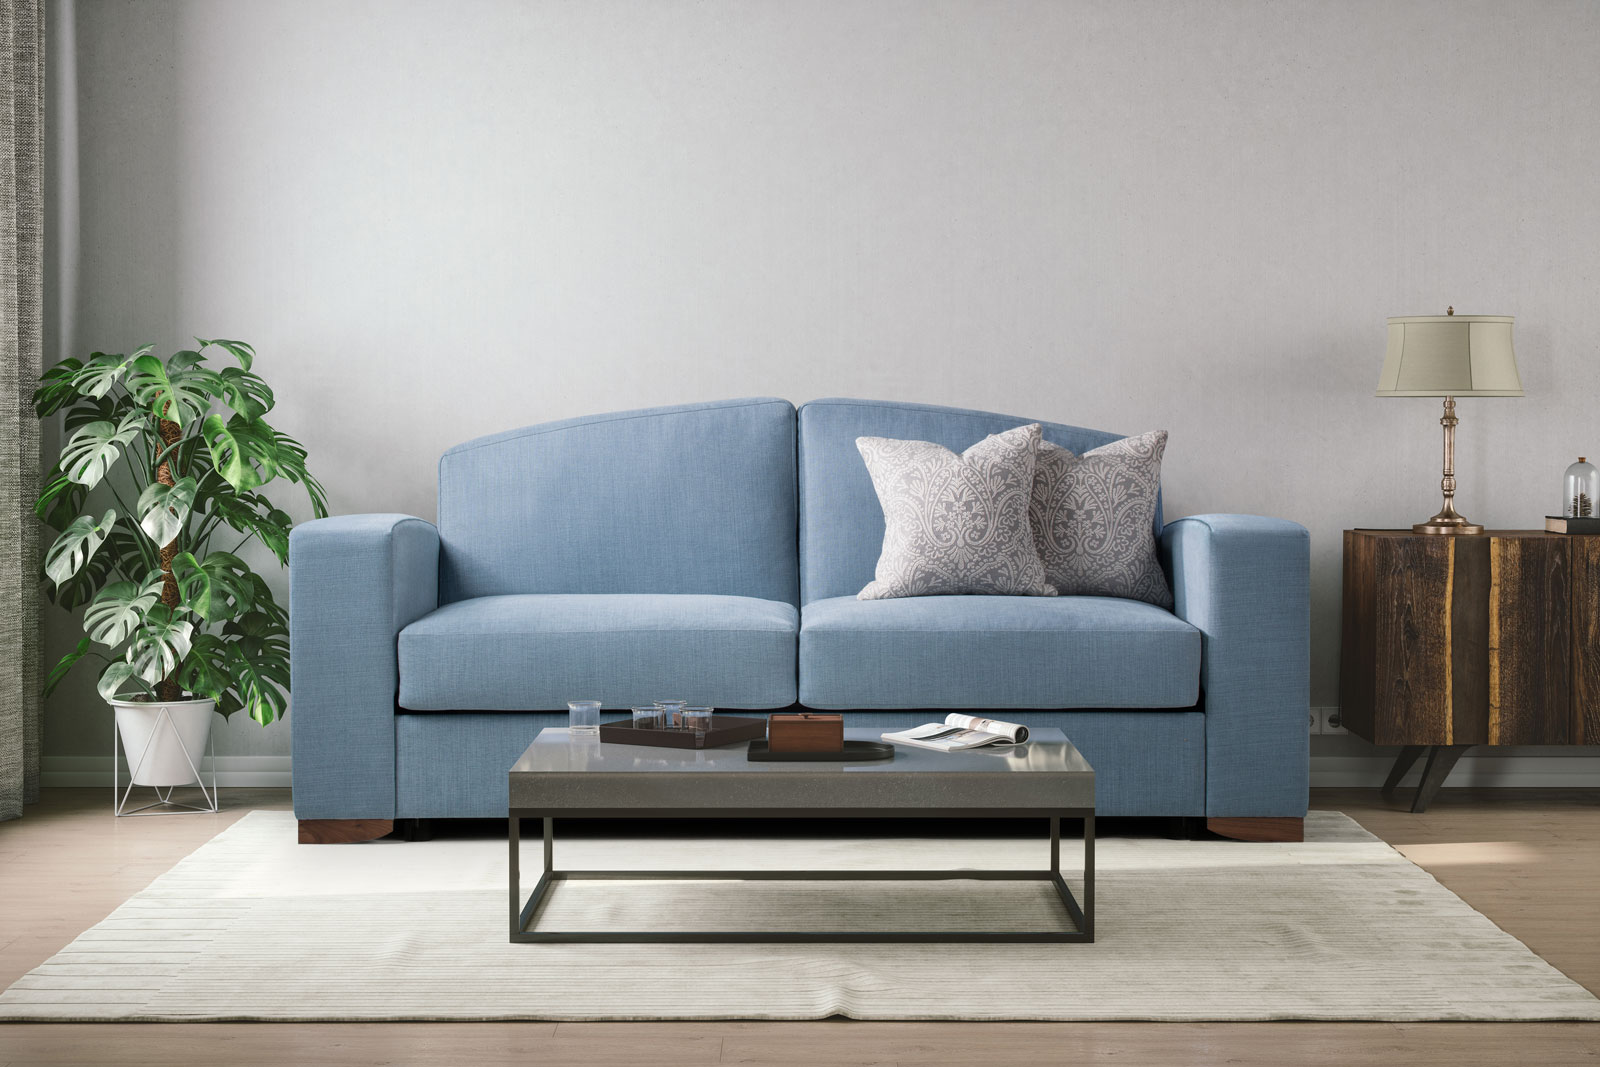 Electric Sofa Bed, Sofa Bed, Sofa Bed London, London Sofa Bed, Everyday sofa beds